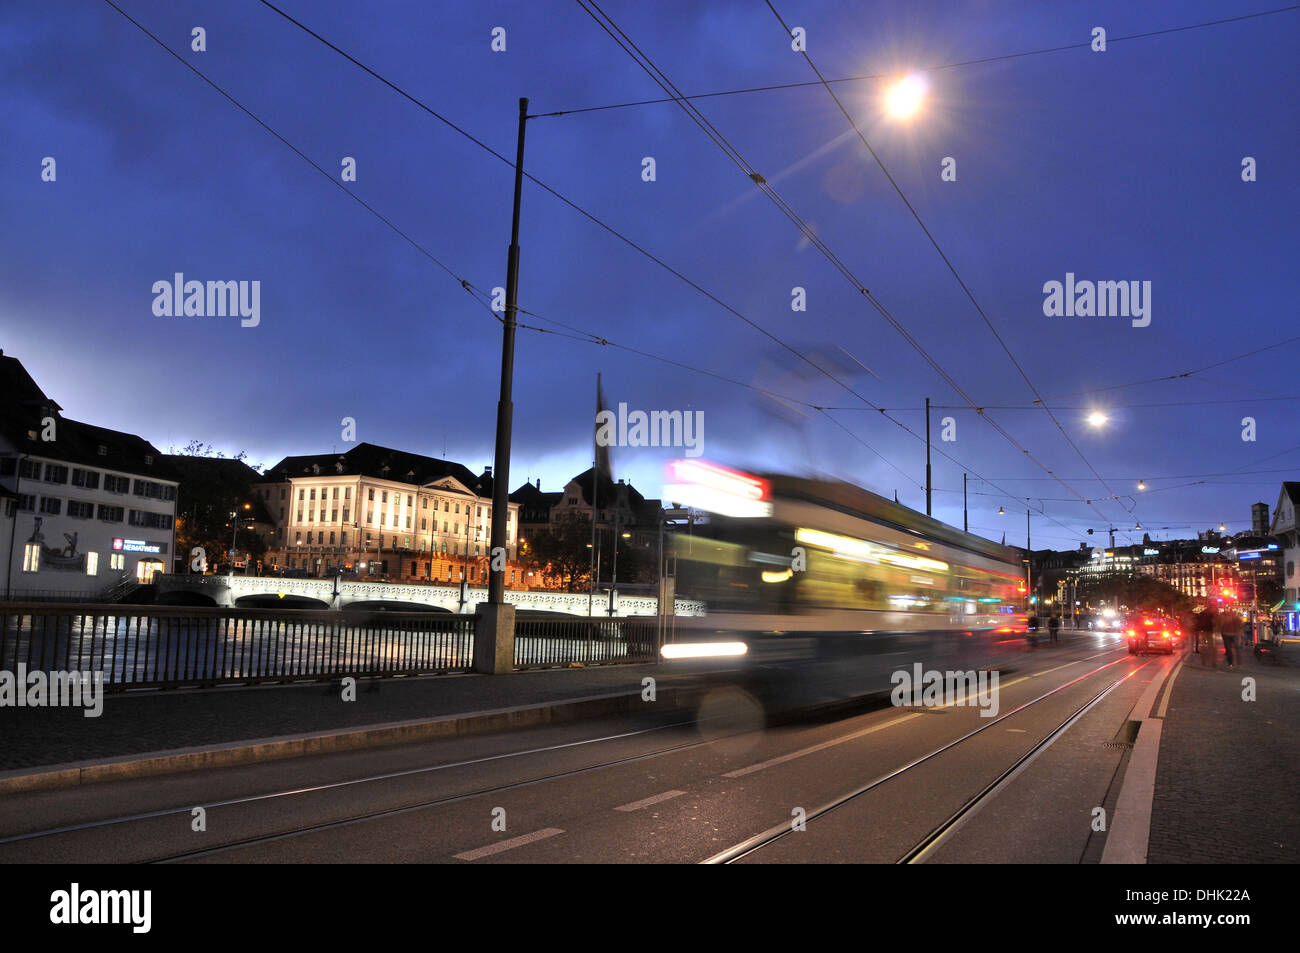 View over Limmat river onto administrative buildings in the evening, Zurich, Switzerland, Europe - Stock Image